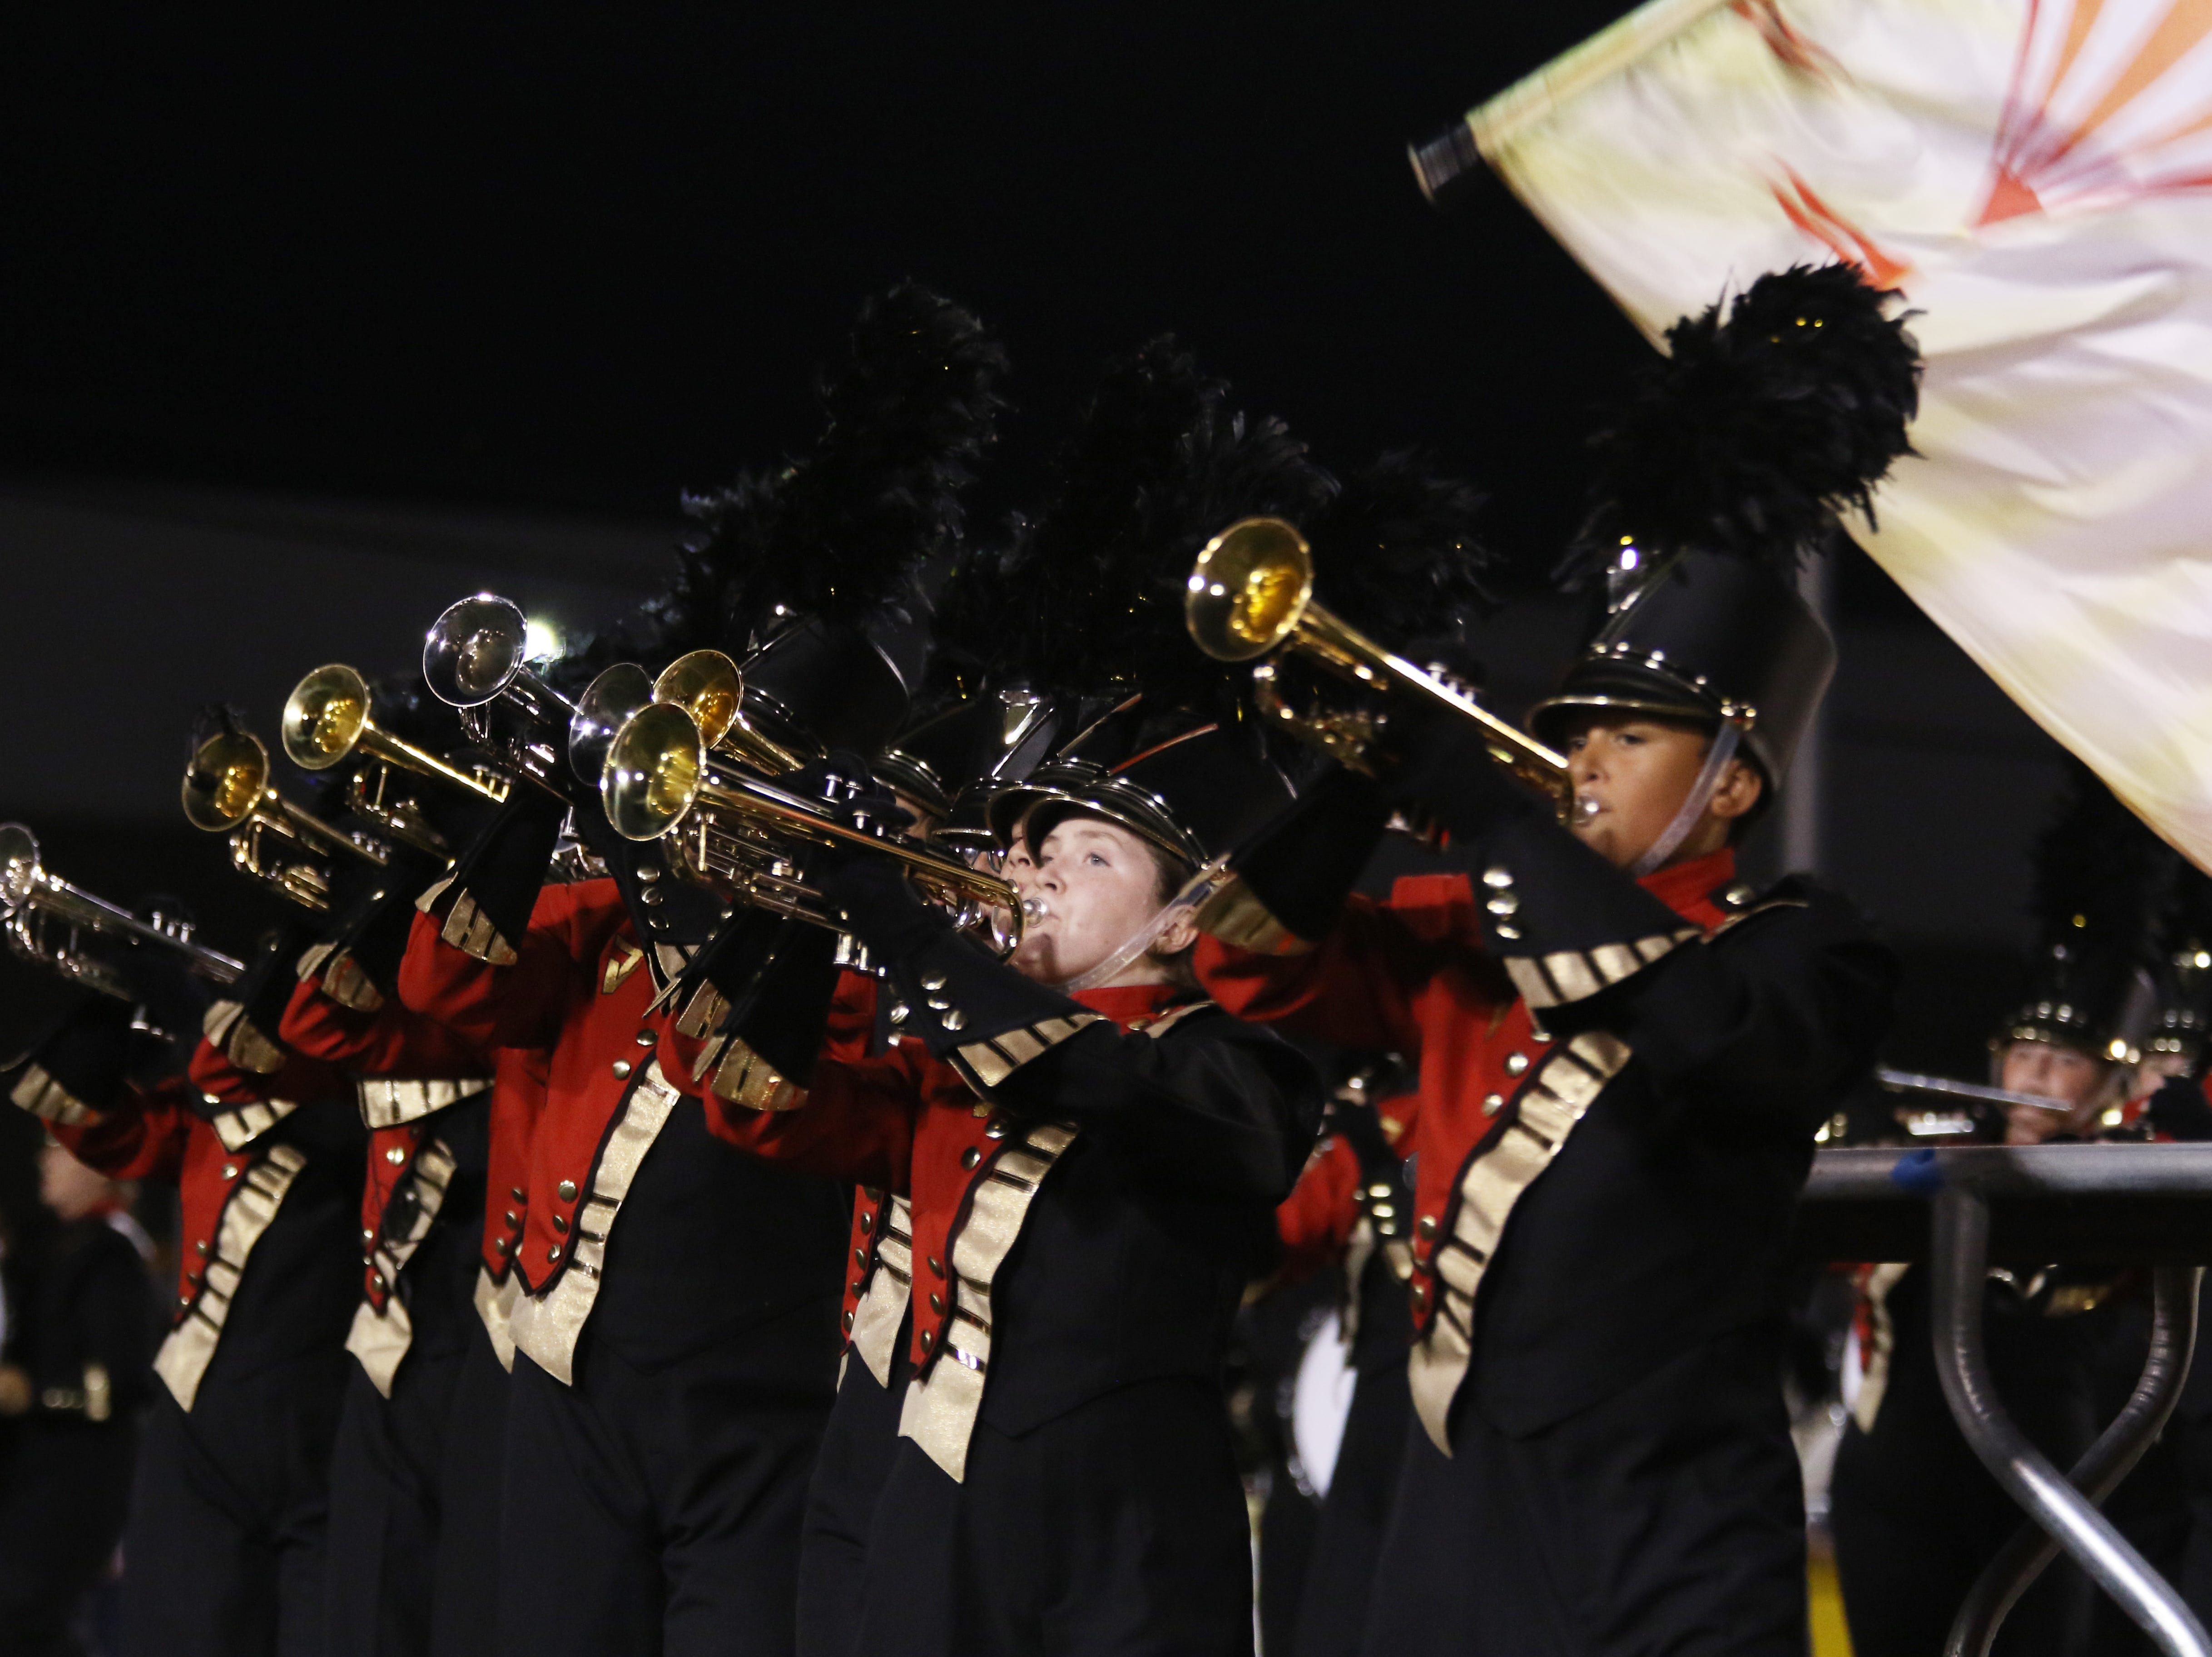 The Tri-Valley High School marching band performs during halftime on Friday.